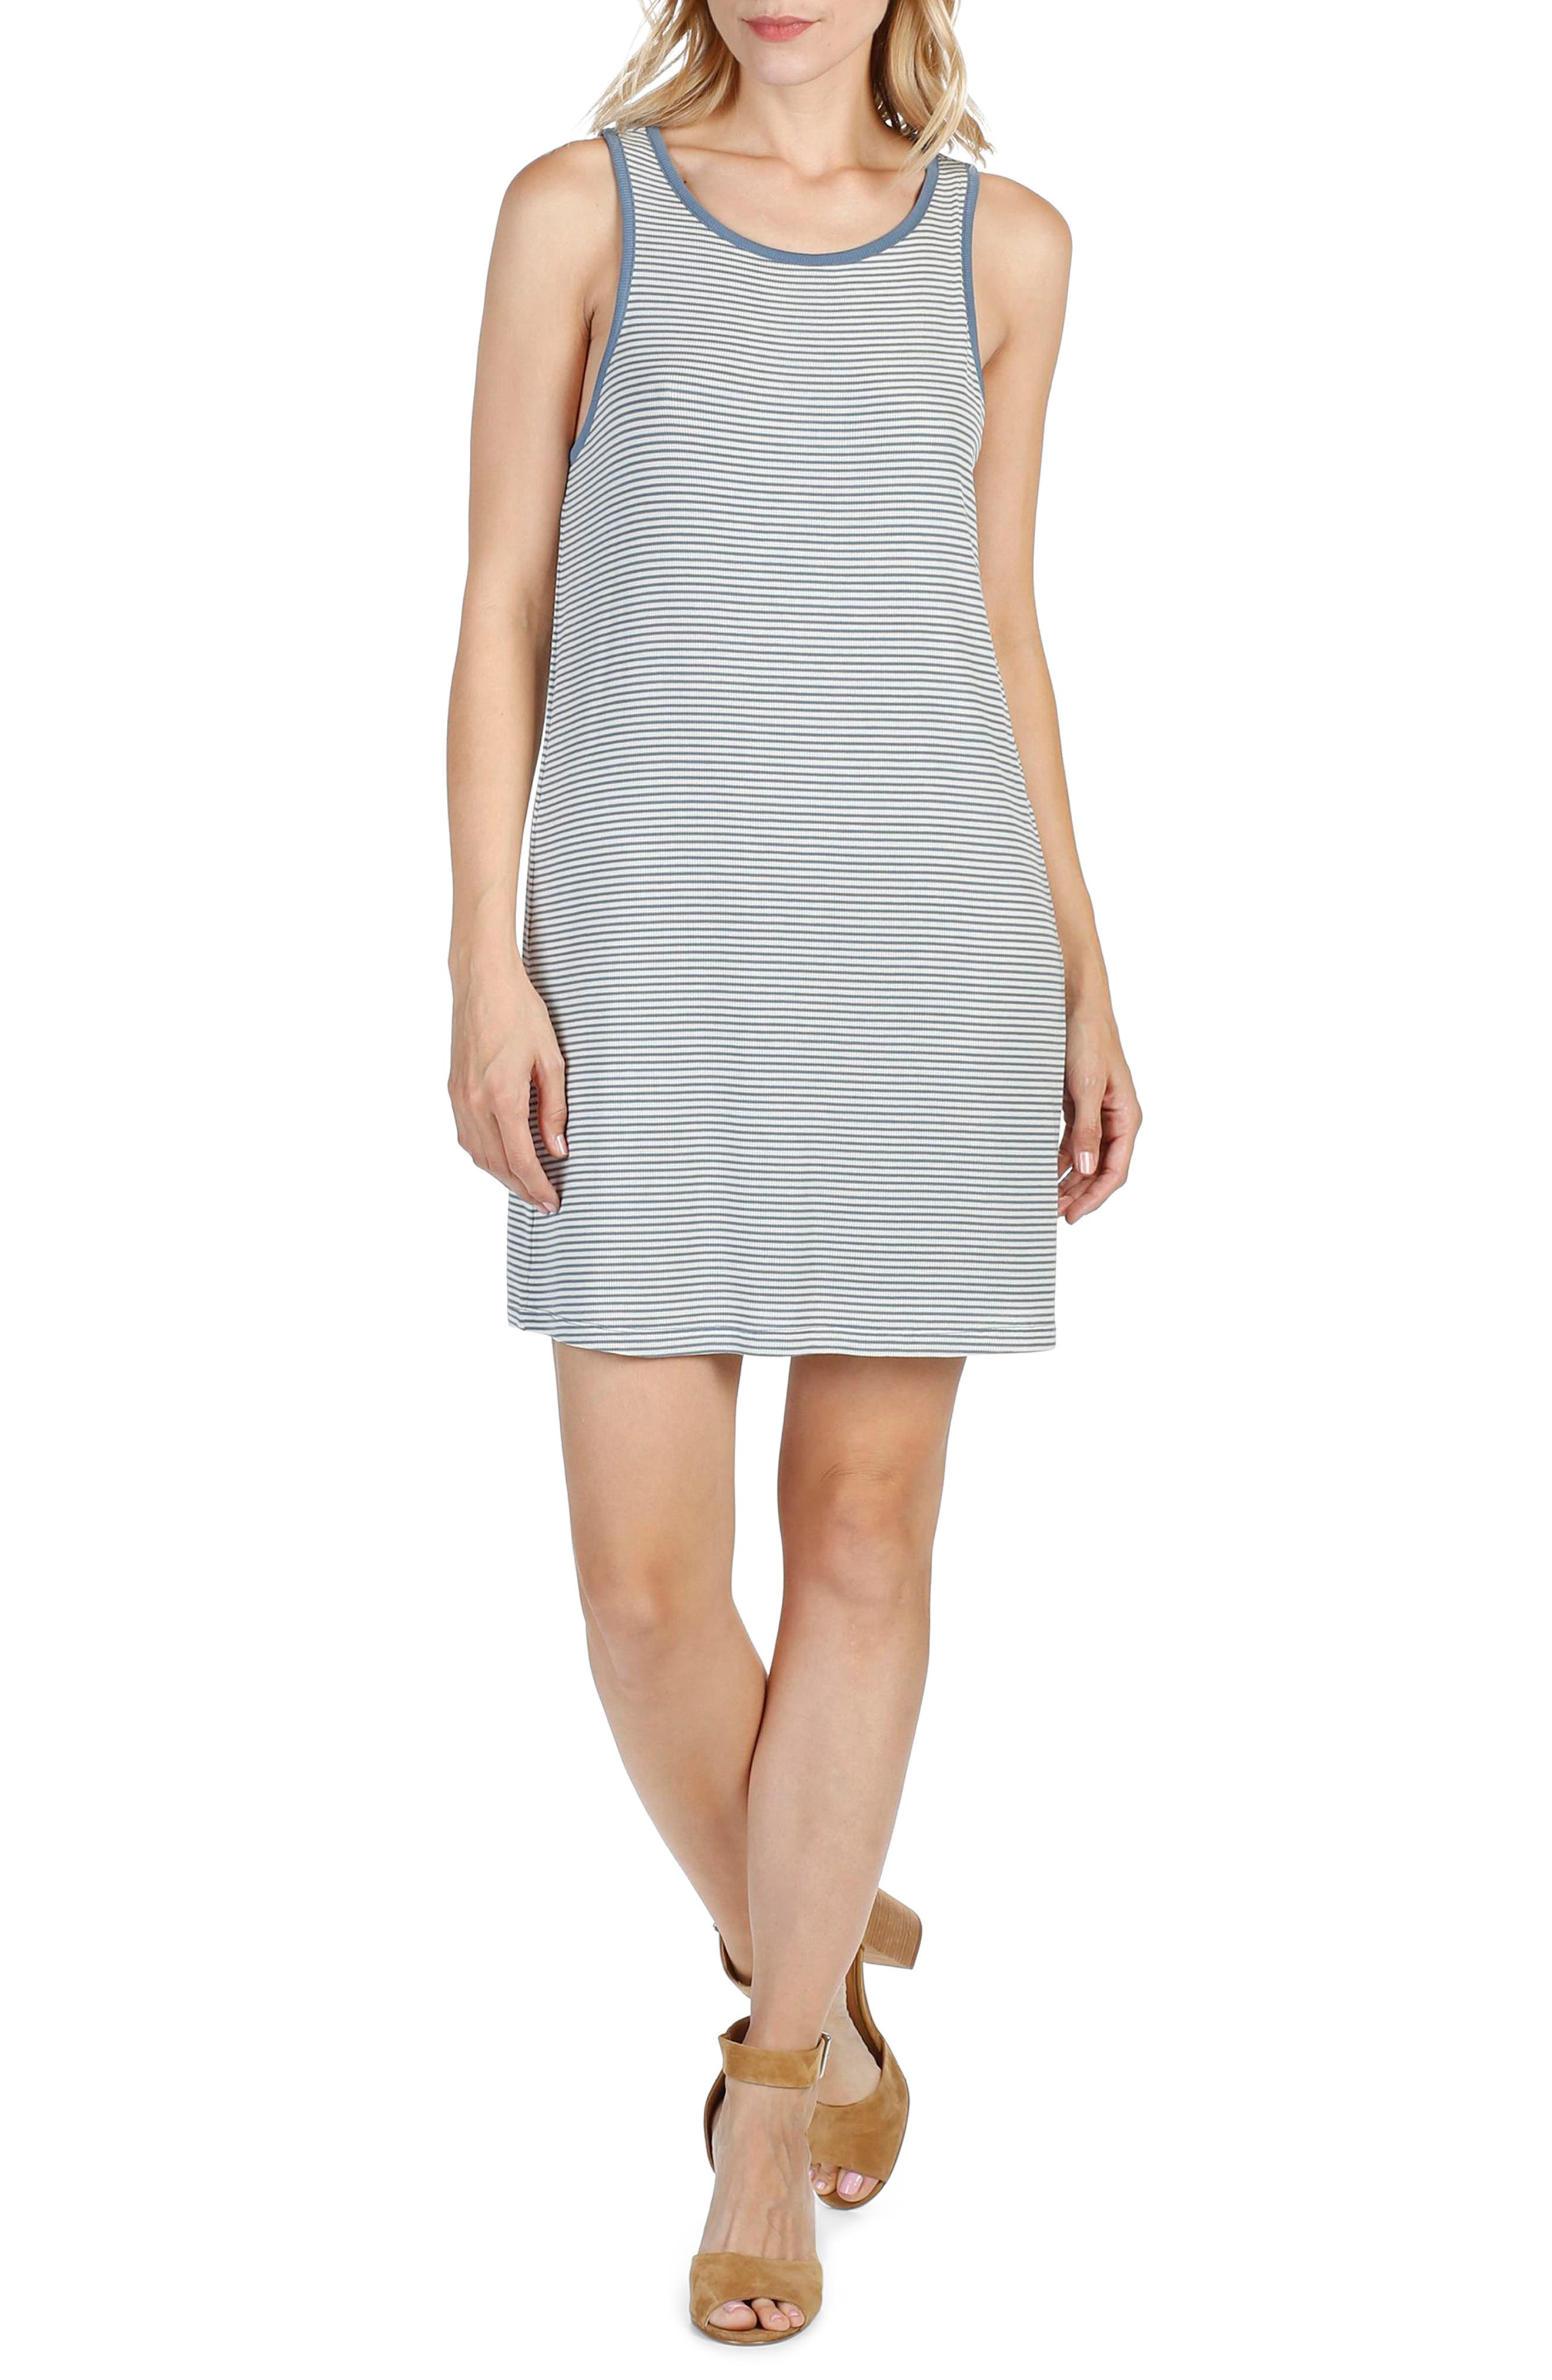 PAIGE Mia Shift Dress